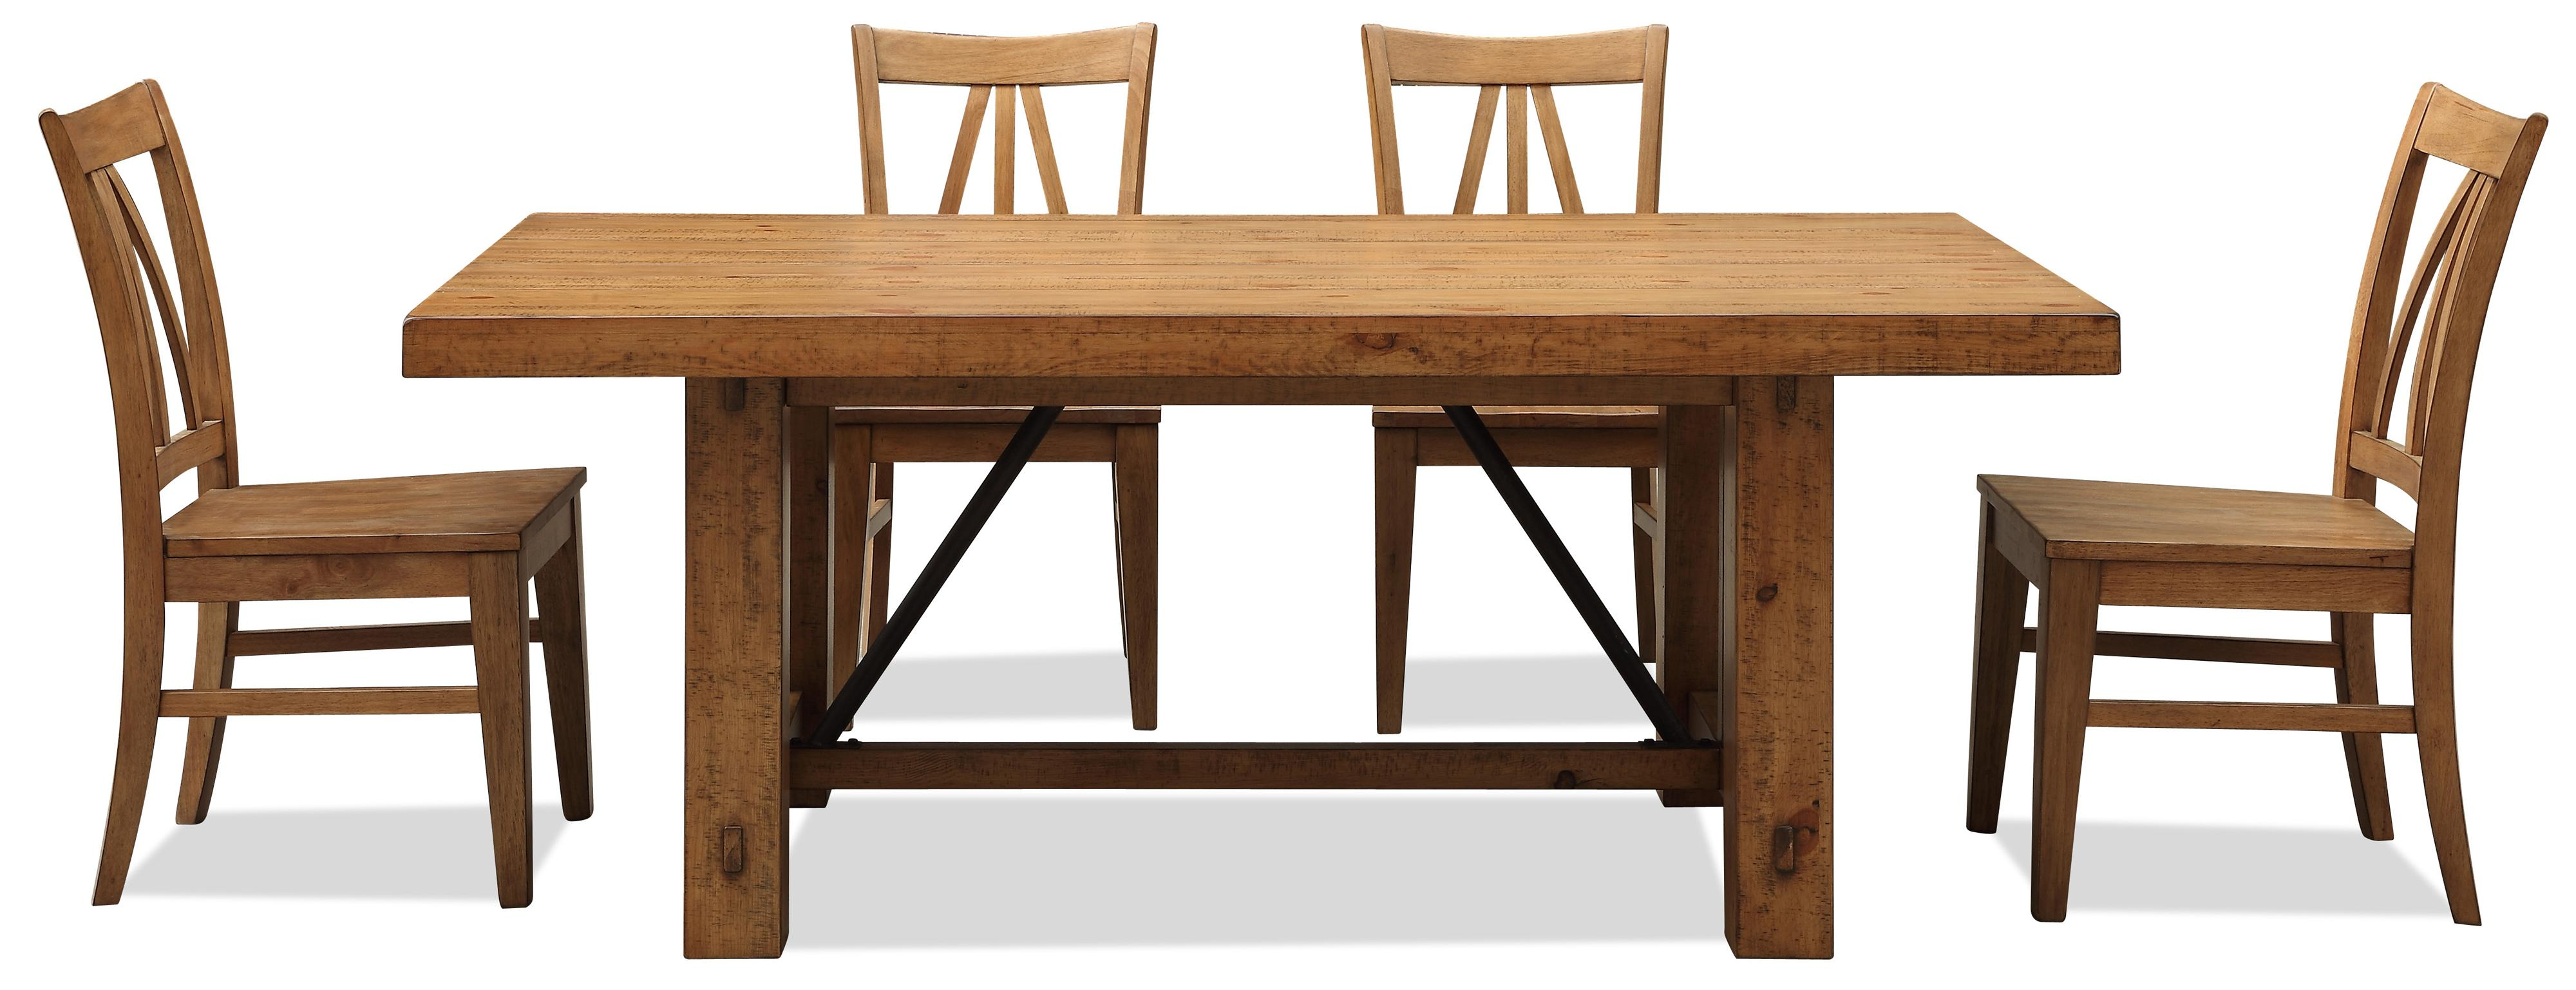 Riverside Furniture Summer Hill 5 Piece Rustic Dining Table ...